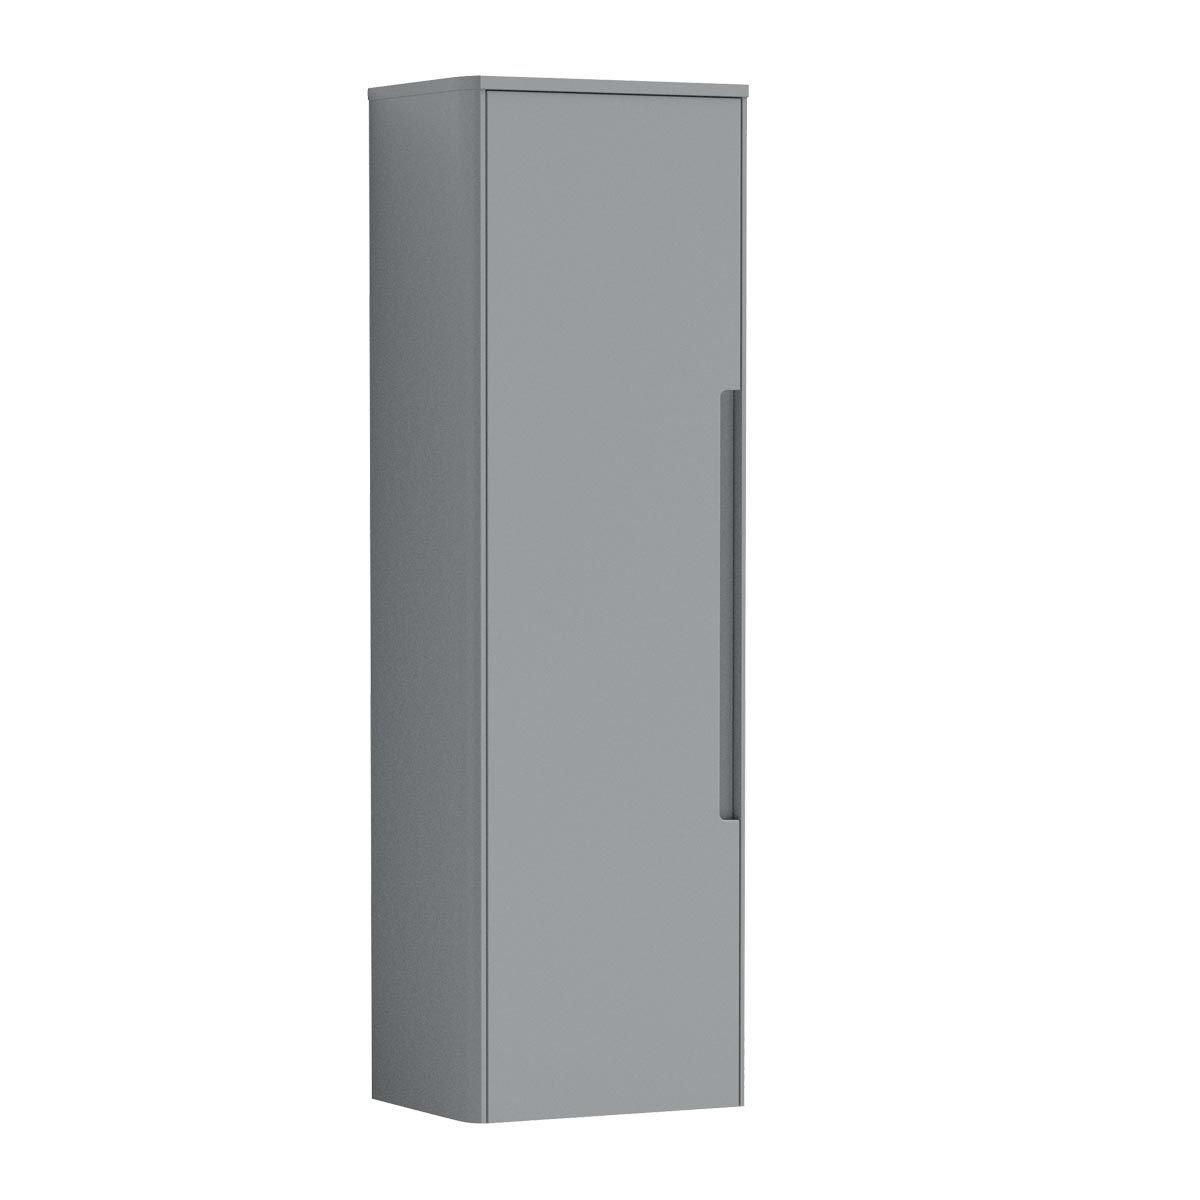 Nuie Elbe Grey Wall Hung Tall Unit 350mm